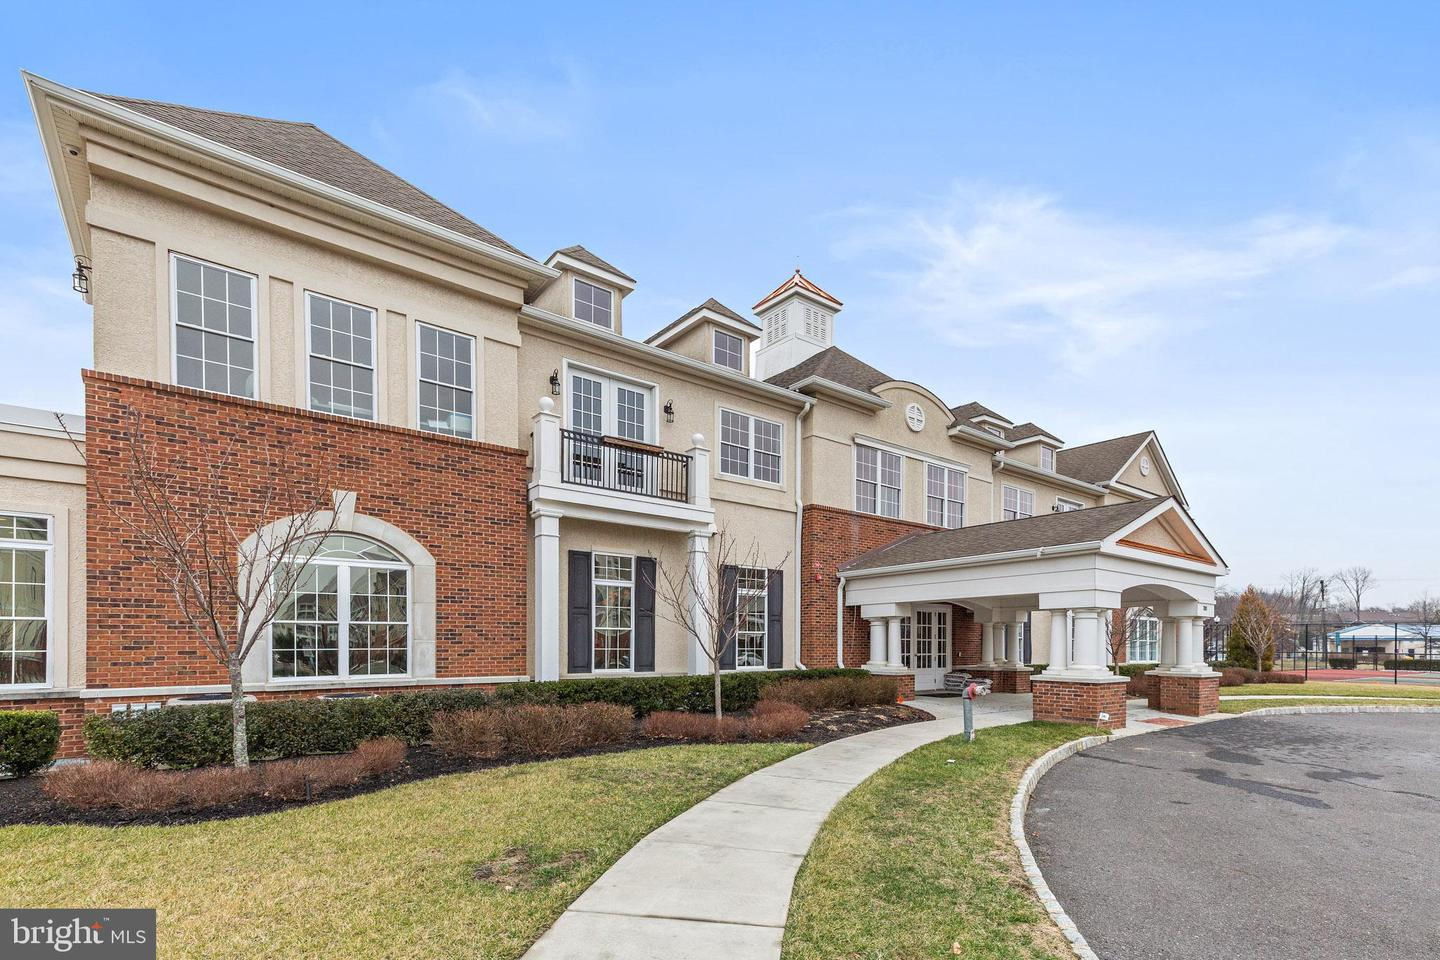 Single Family Home for Rent at Cherry Hill, New Jersey 08002 United States